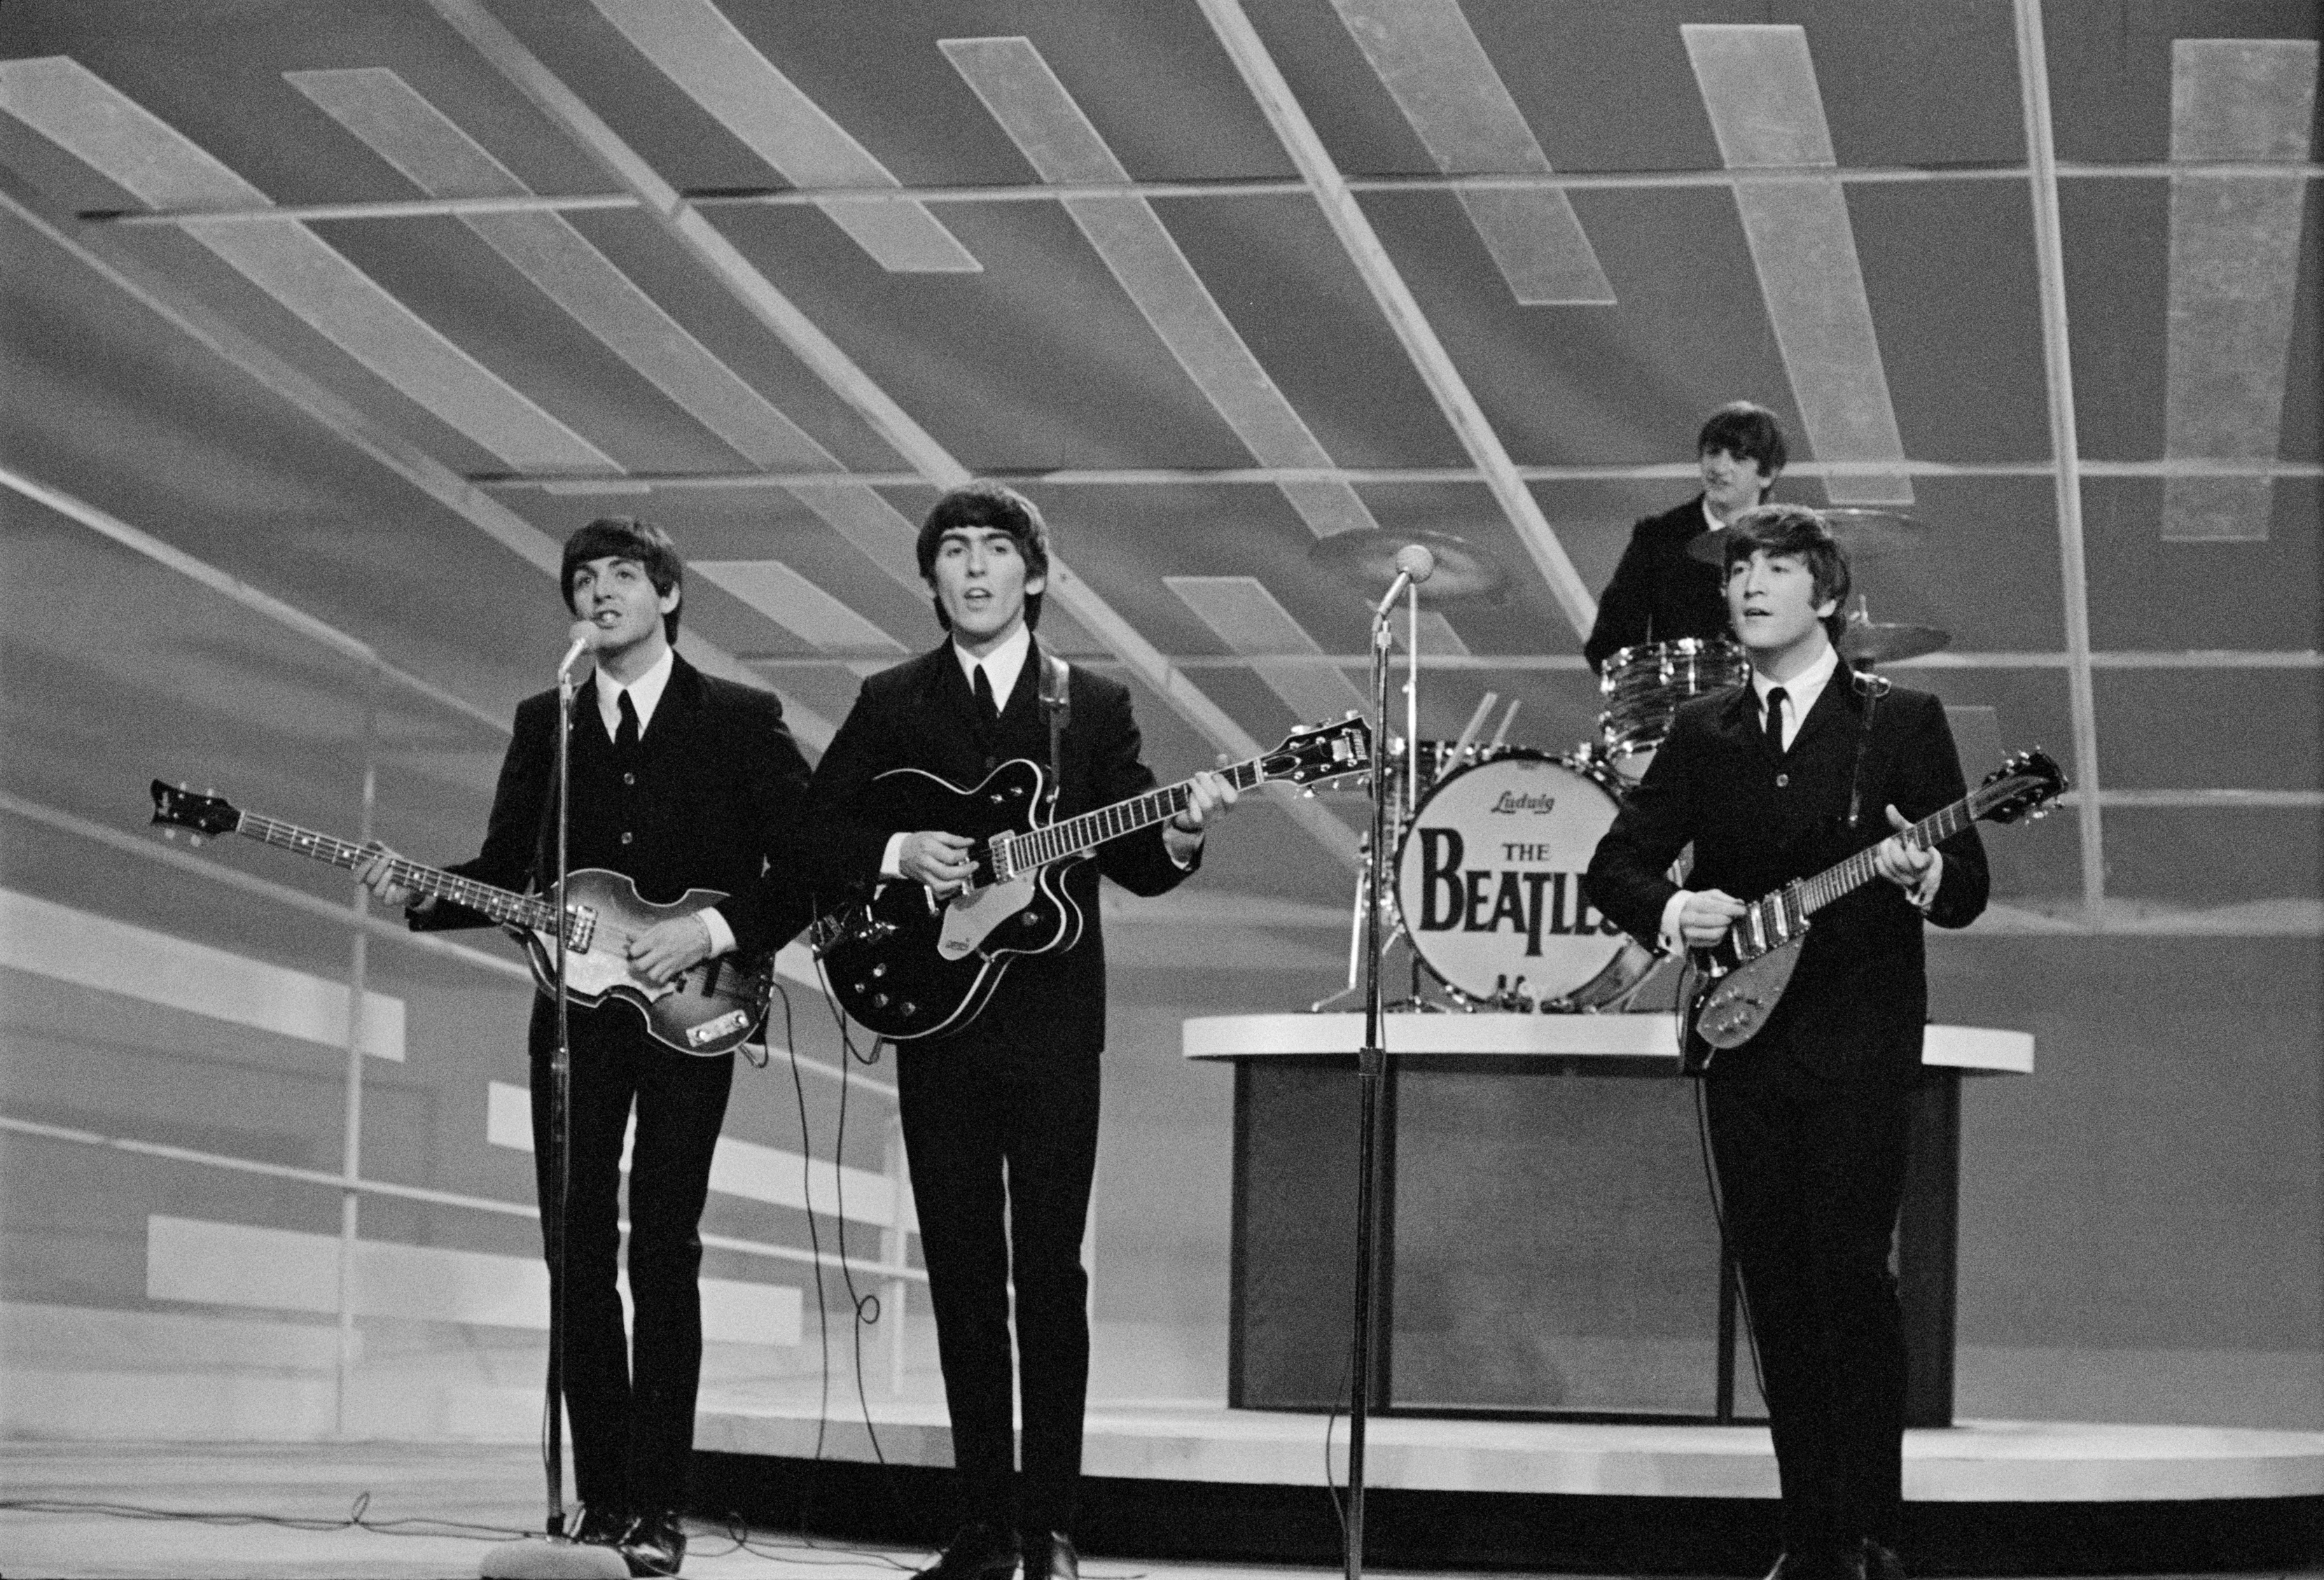 NEW YORK - FEBRUARY 9: The Beatles perform during their first appearance on THE ED SULLIVAN SHOW, February 9, 1964. From left: Paul McCartney, George Harrison, Ringo Starr, and John Lennon. (Photo by CBS via Getty Images)